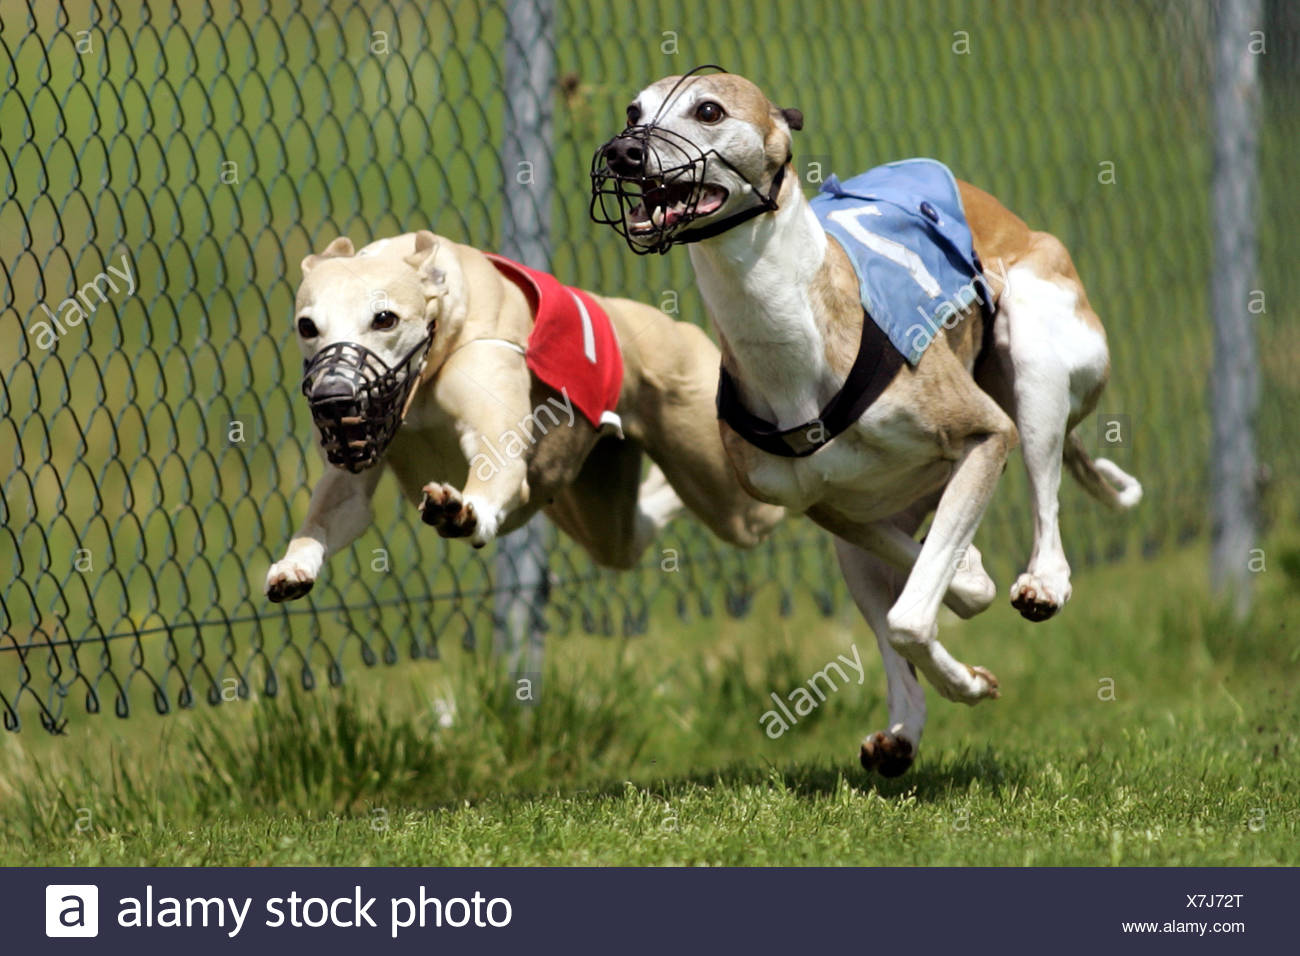 Whippet (Canis lupus f. familiaris), in race, Germany Stock Photo